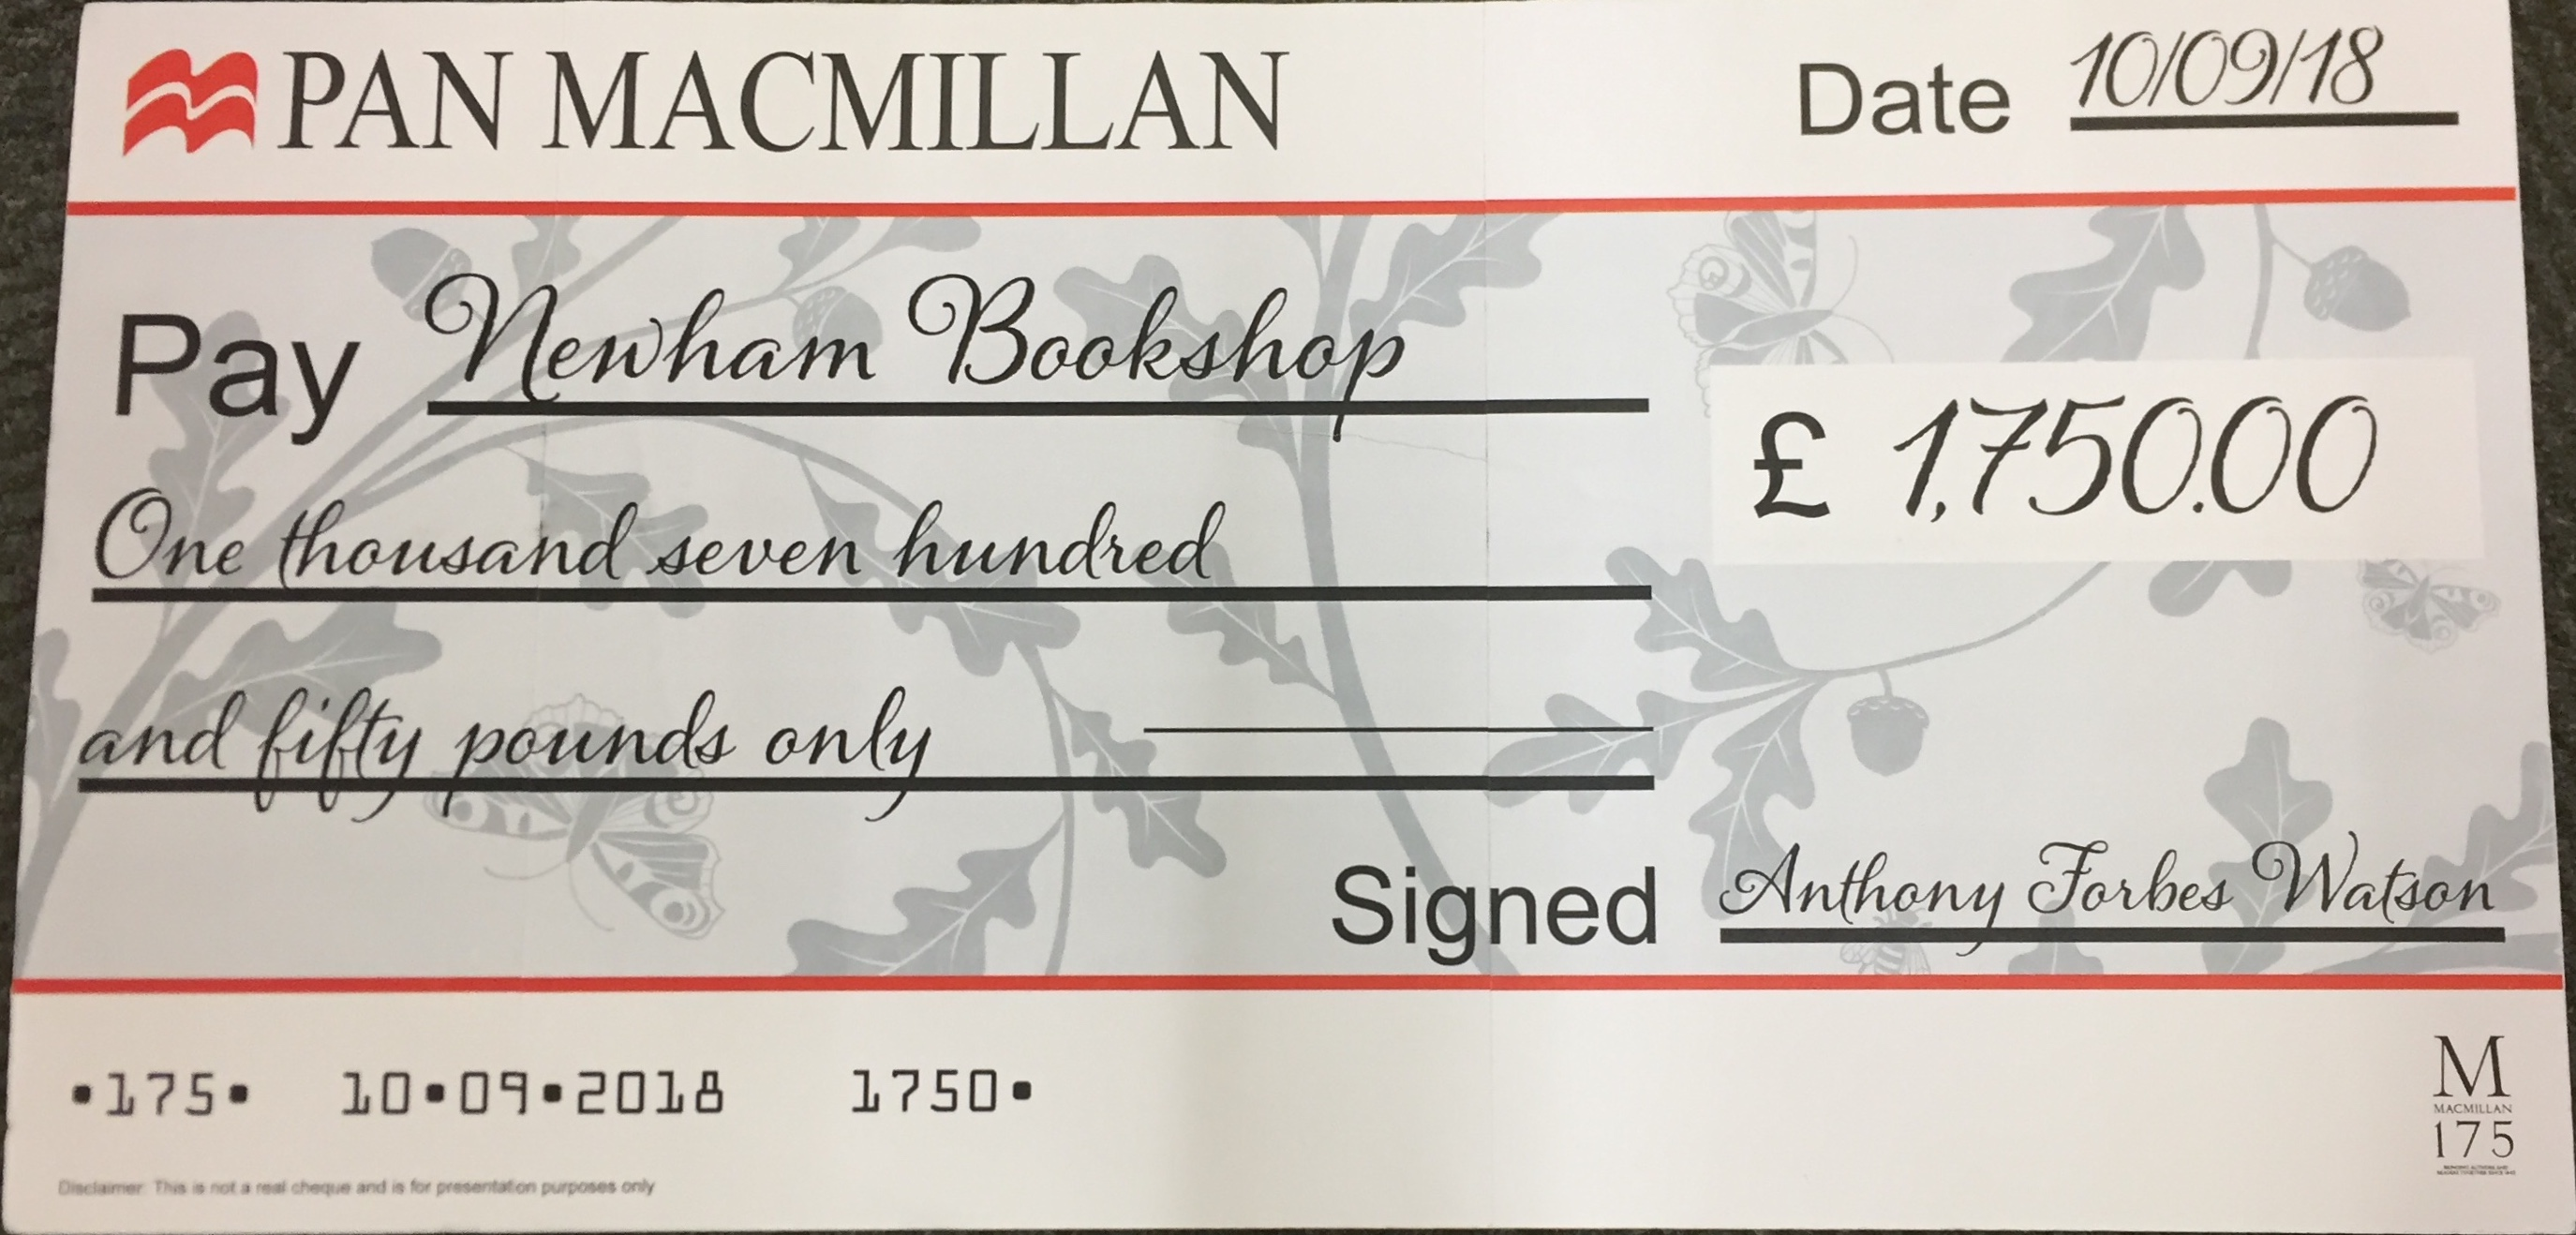 Pan Macmillan big cheque